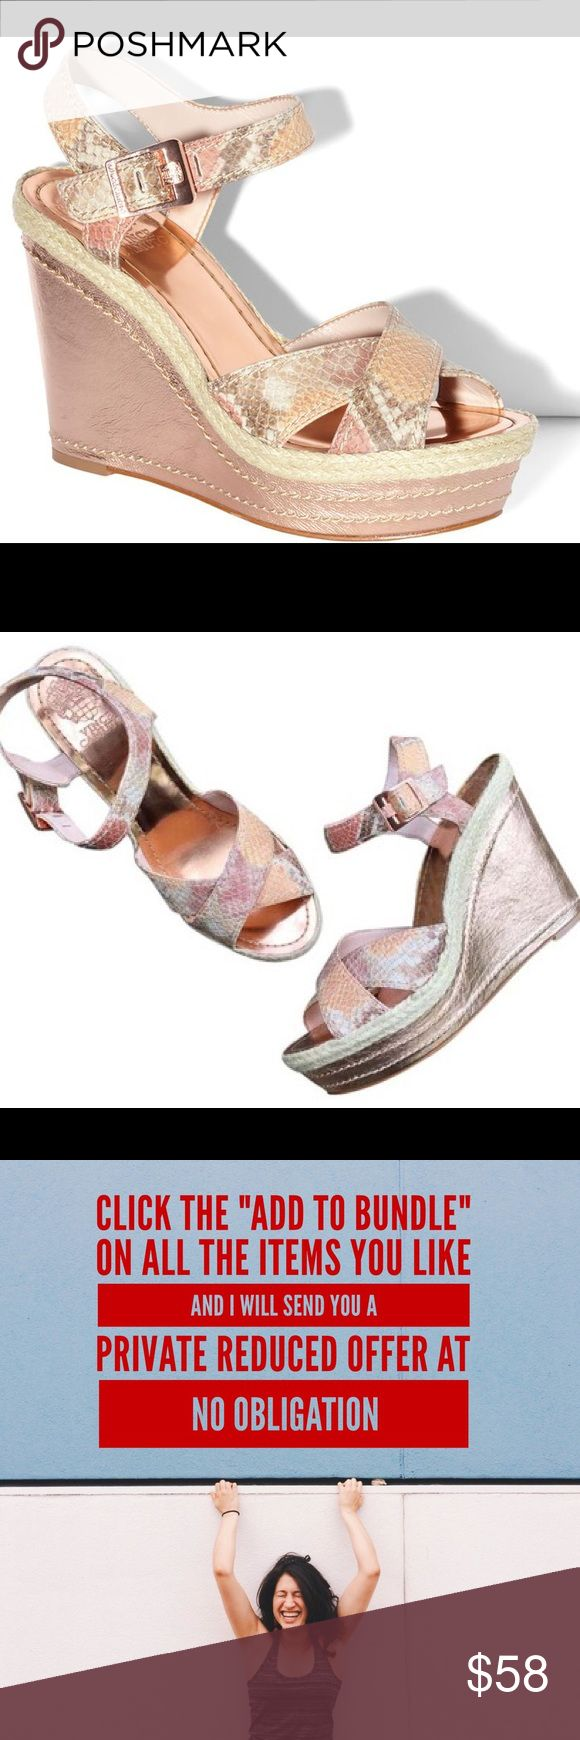 ✅HP✅NWT - Vince Camuto Edon Peach  Size 8 1/2 NWT - Vince Camuto Edon Peach Pearl sandals – Women's Size 8 1/2 -  Soft leather upper in a two piece dress wedge style. Rose Gold buckle, Soft leather lining. 1 1/2 inch platform;4 1/4 inch leather wrapped wedge heel. The foot bed is stamped with Vince Camuto logo, offers cushioning to ensure all-day comfort. This shoe elevates the style of capri pants, bermudas, or a shorter skirt.    Please ask all questions ✅Use Offer Button & Free Home…